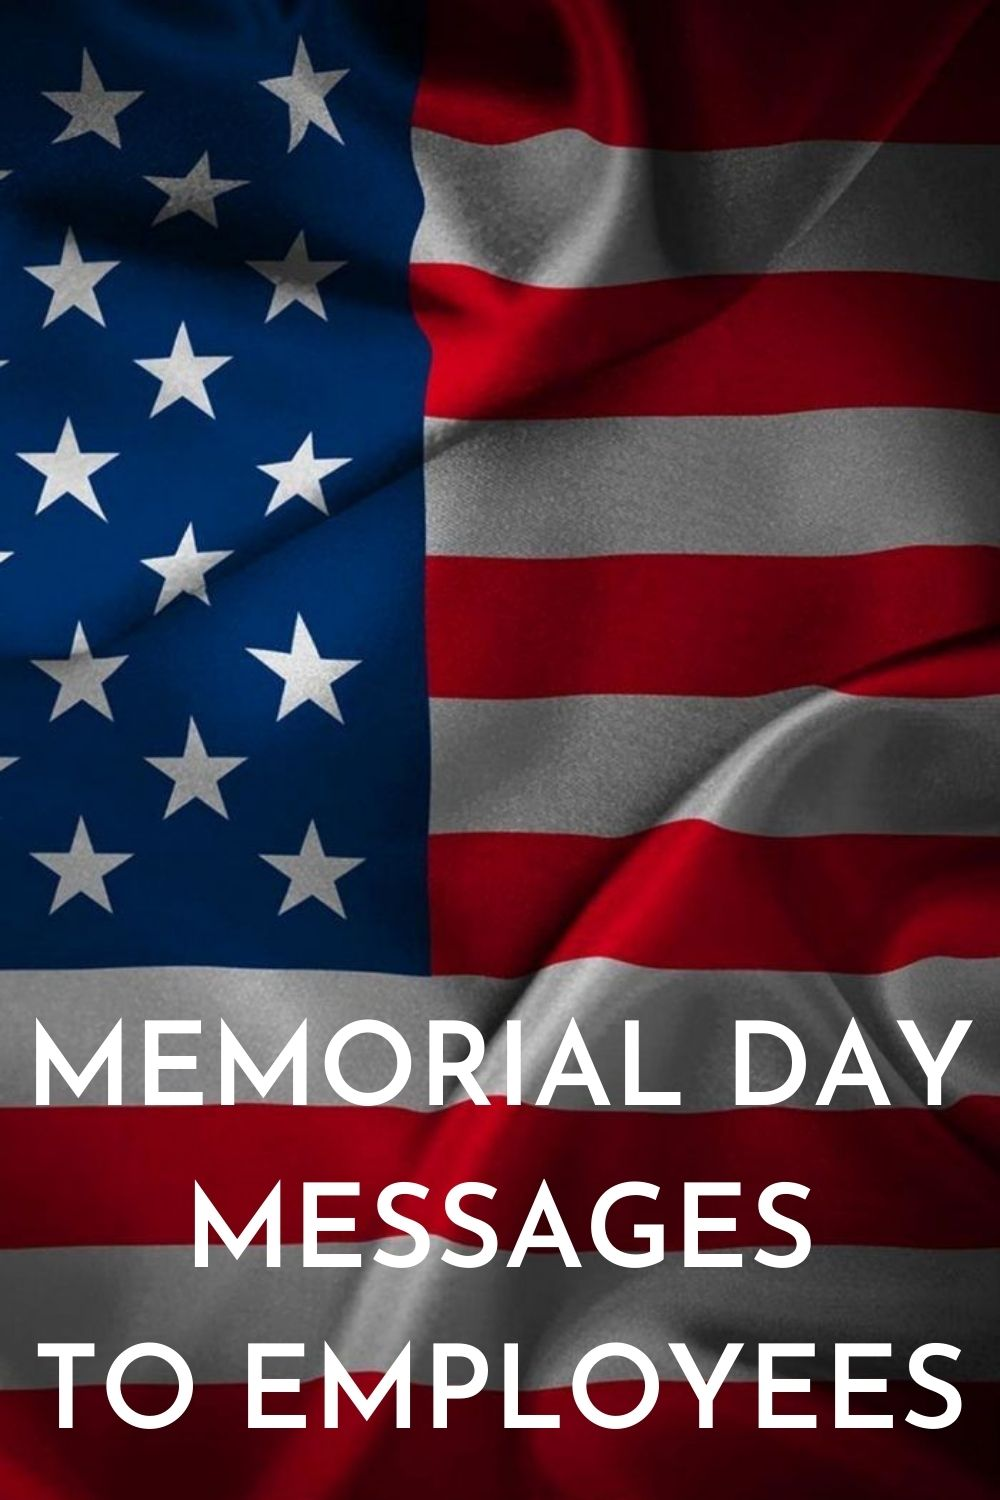 memorial day messages to employees